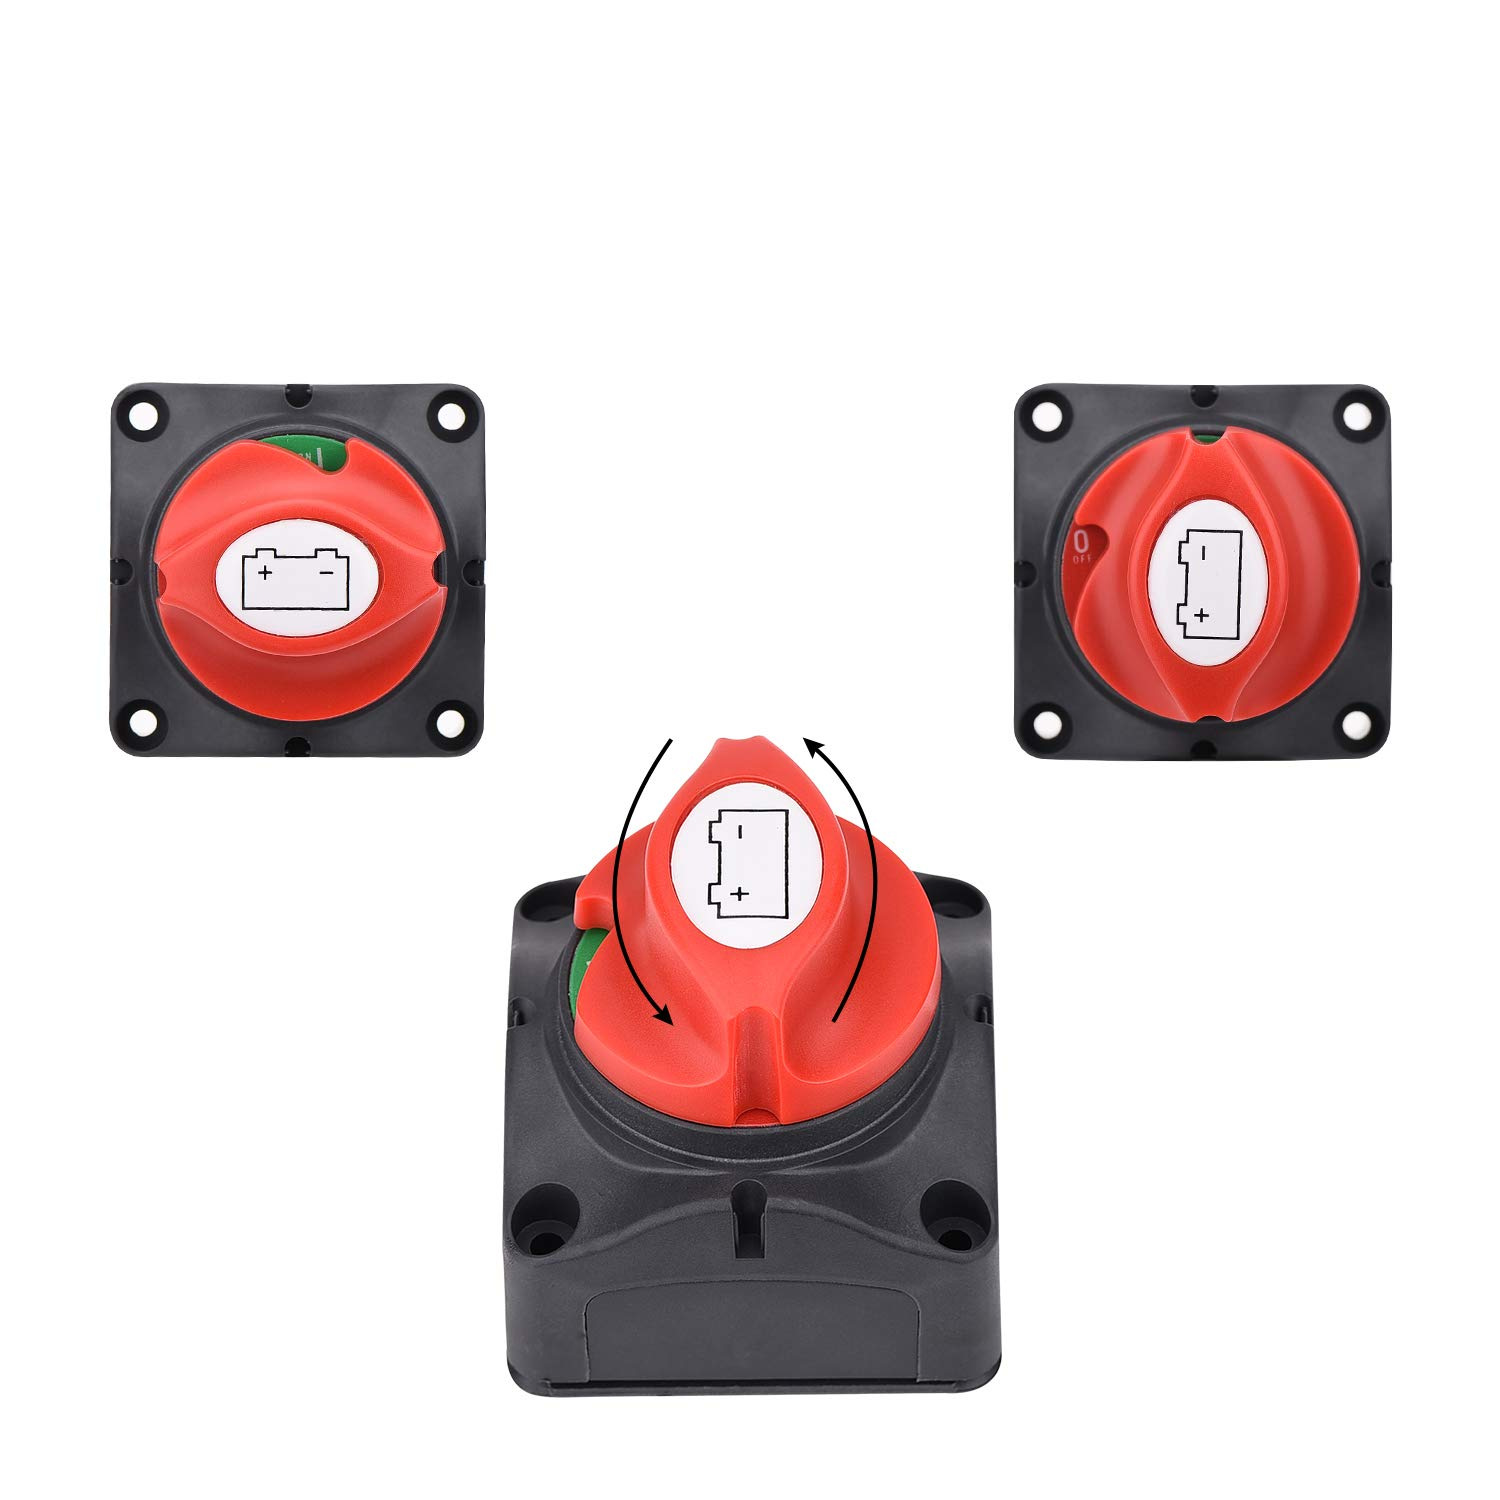 MOPEI 4-Position Battery Isolator Disconnect Switch for Car Camper RV and Marine Boat Comes with Copper Terminals and Shrink Tubes 12-48V DC 200 Amps Continuous